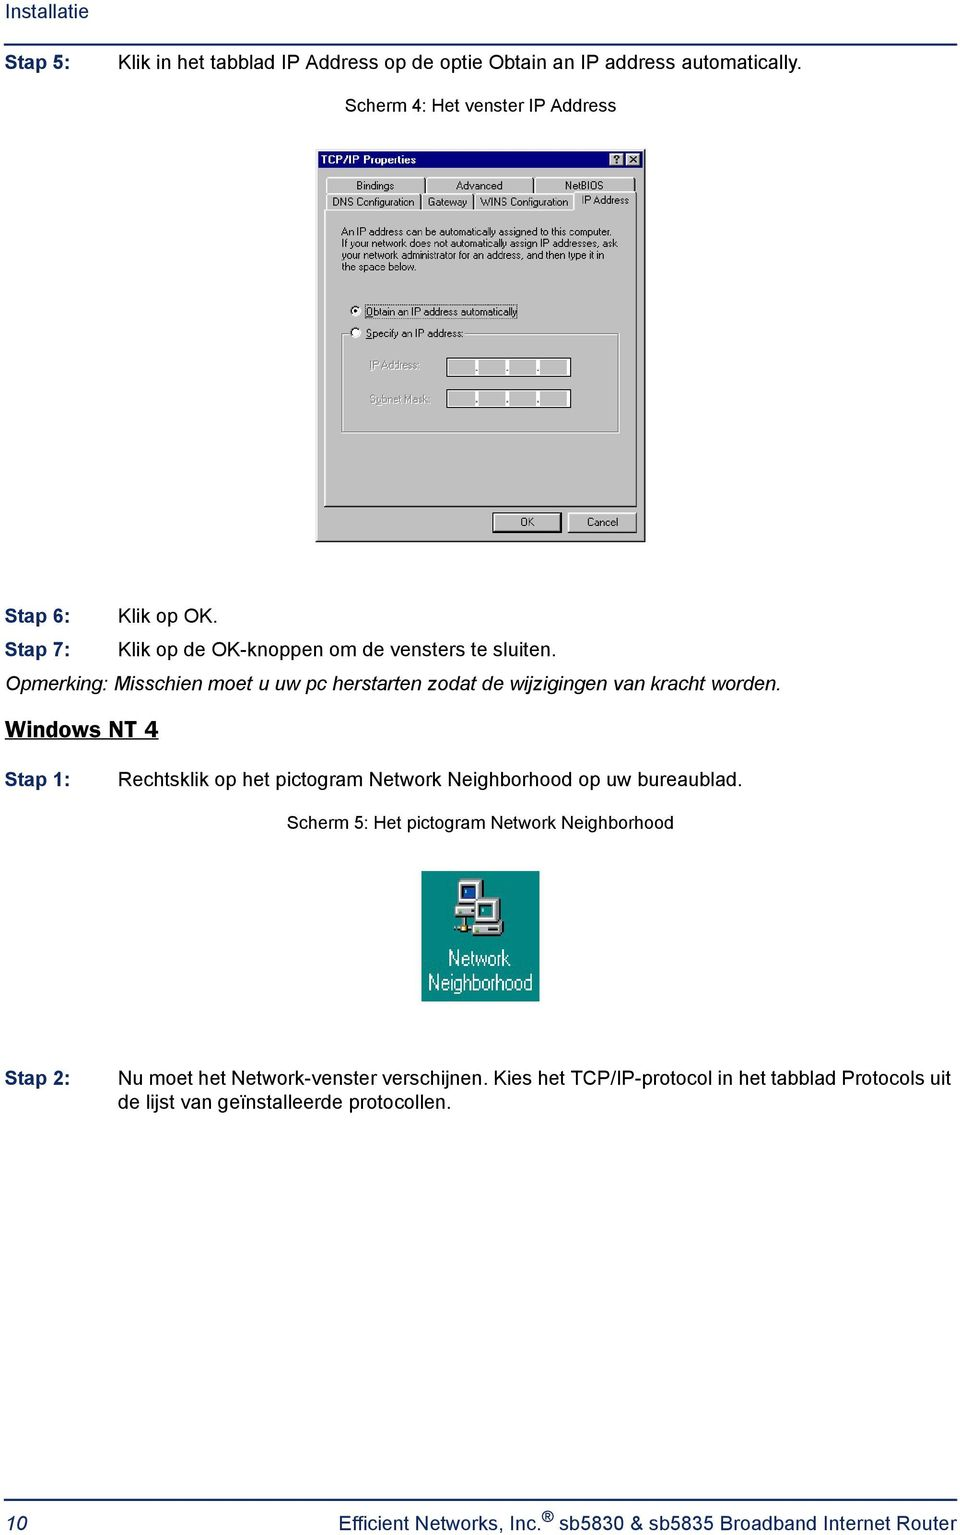 Windows NT 4 Stap 1: Rechtsklik op het pictogram Network Neighborhood op uw bureaublad.